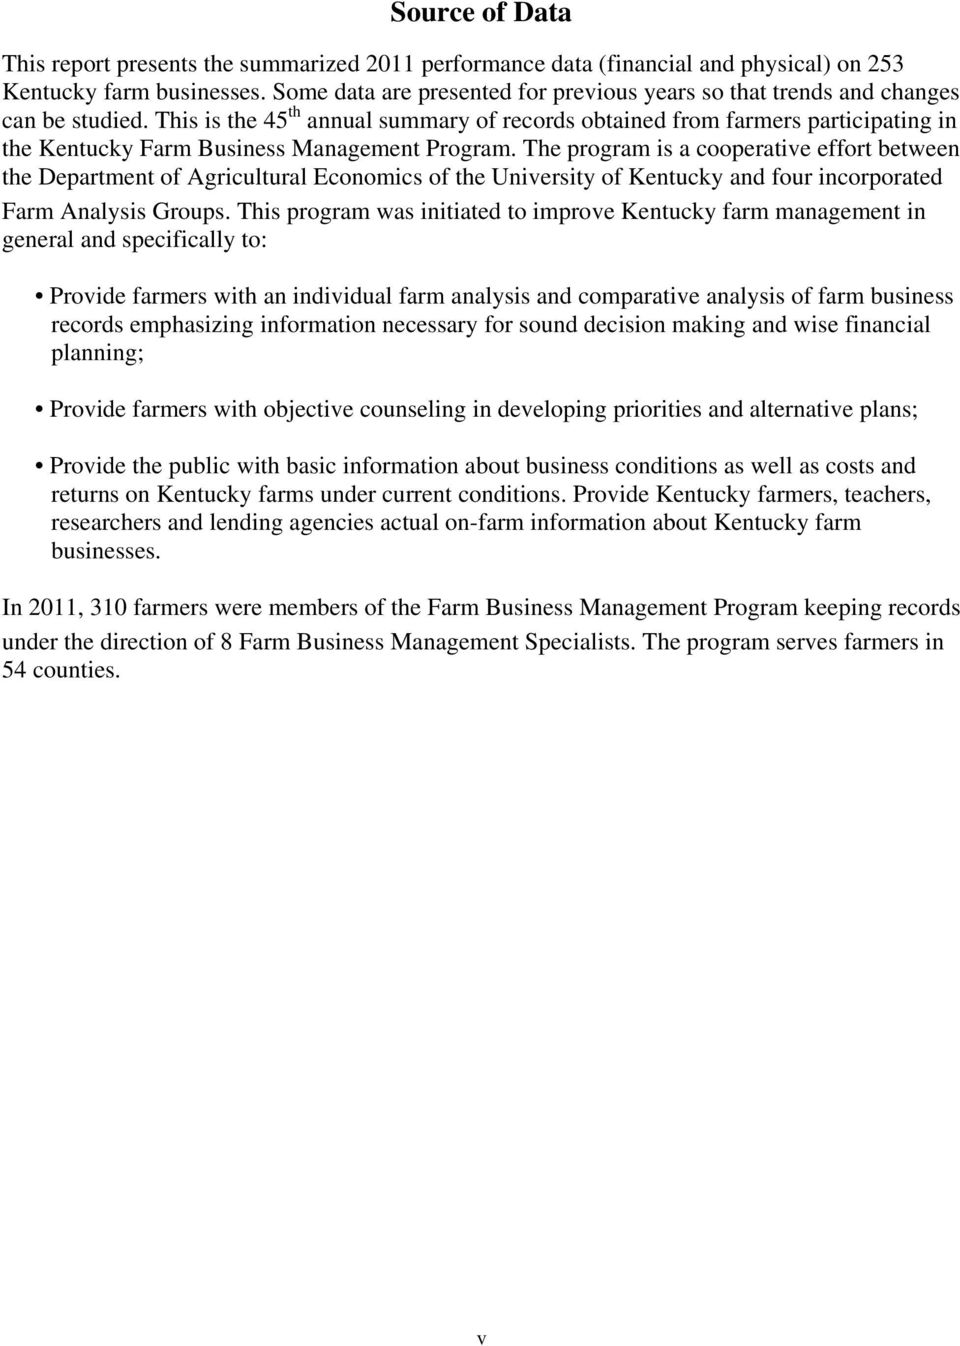 This is the 45 th annual summary of records obtained from farmers participating in the Kentucky Farm Business Management Program.